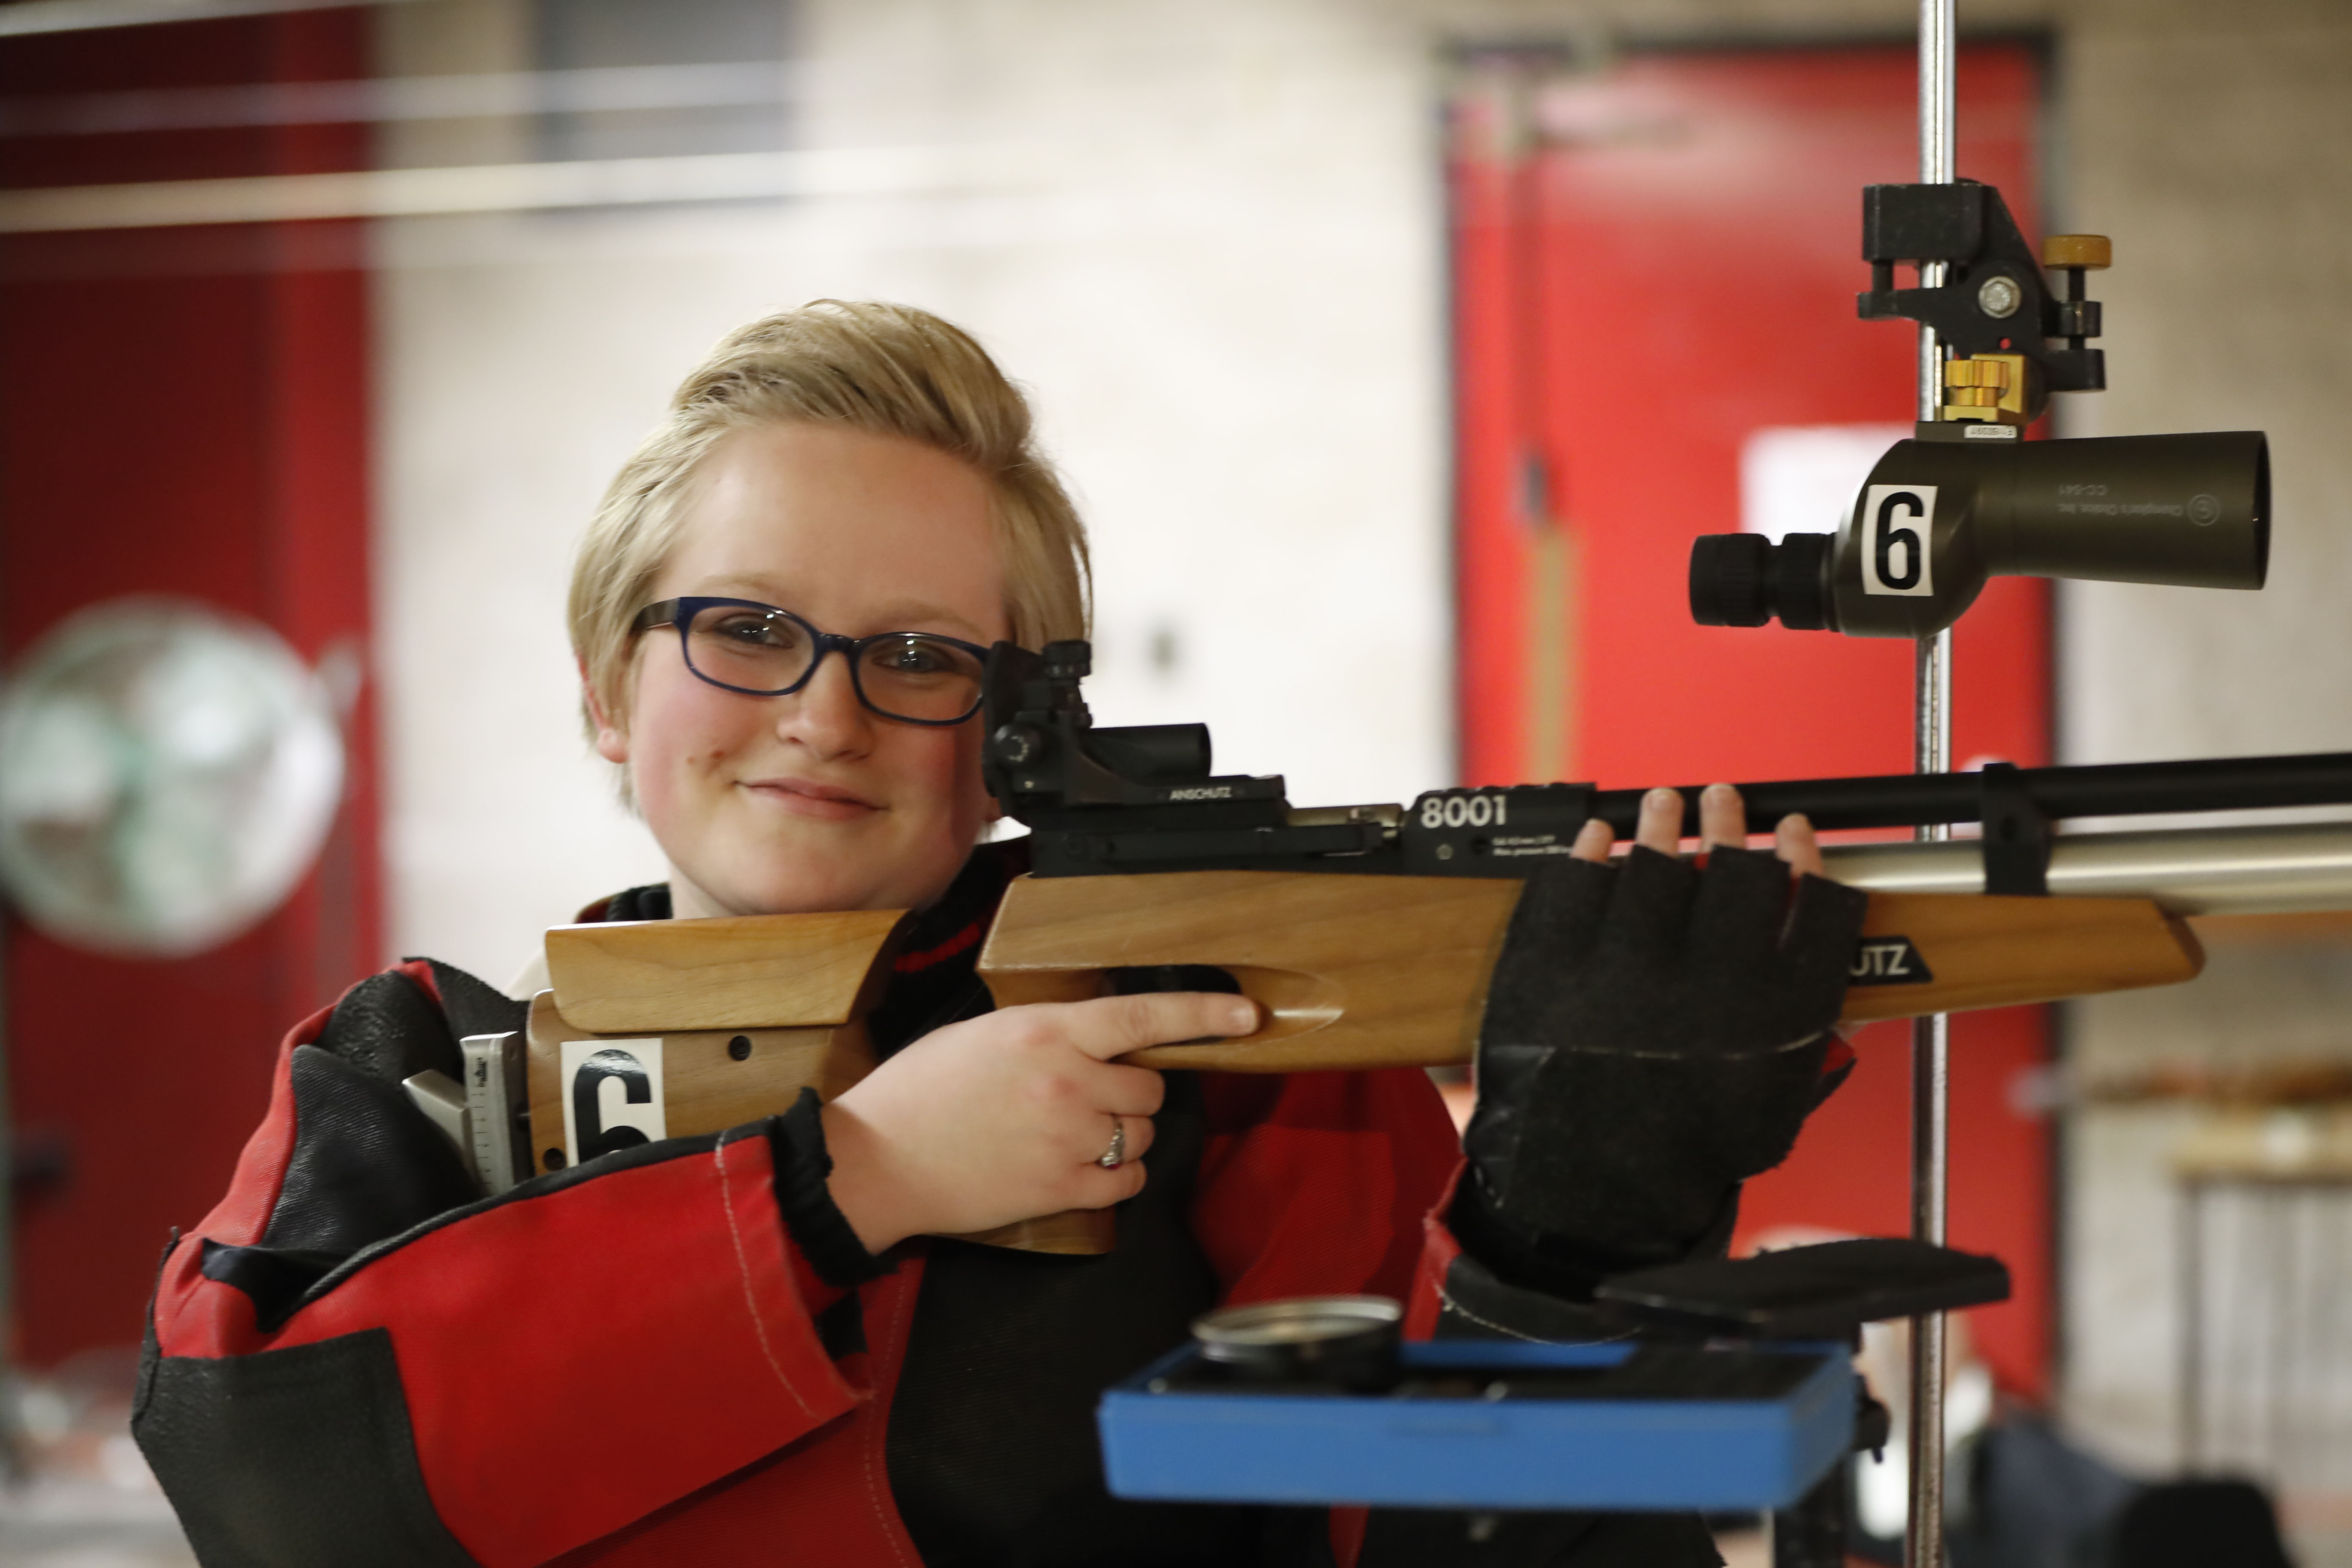 Kiersten E. Mucha was named Female Youth of the Year by the Erie County Federation of Sportsmen's Clubs. (Harry Scull Jr./Buffalo News)